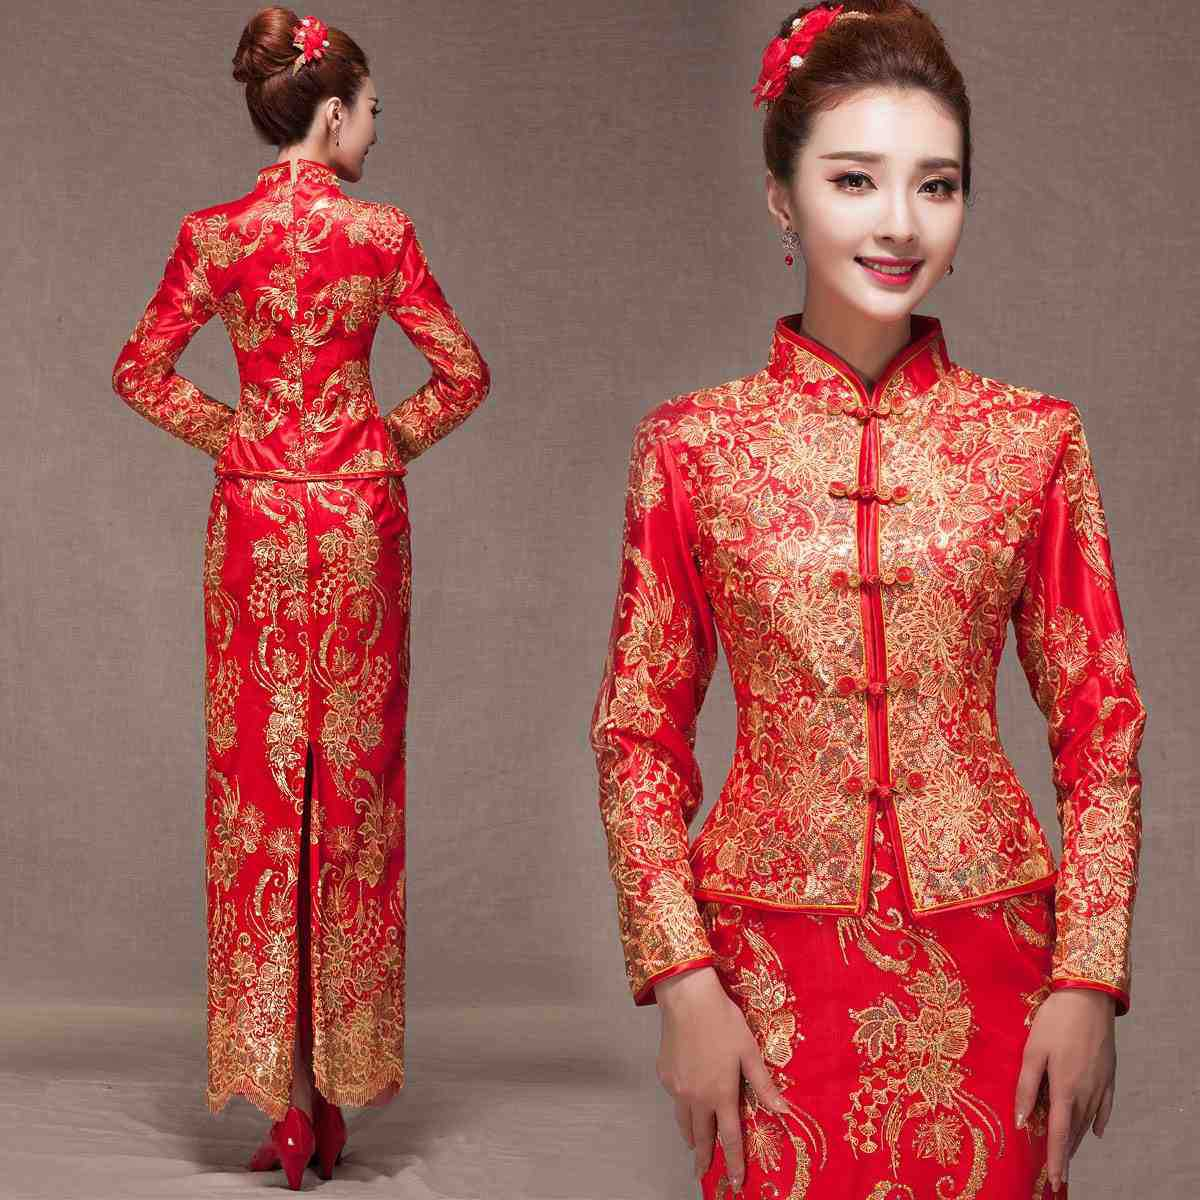 Chinese Wedding Gowns: Aliexpress.com : Buy Chinese Wedding Dresses Red Lace